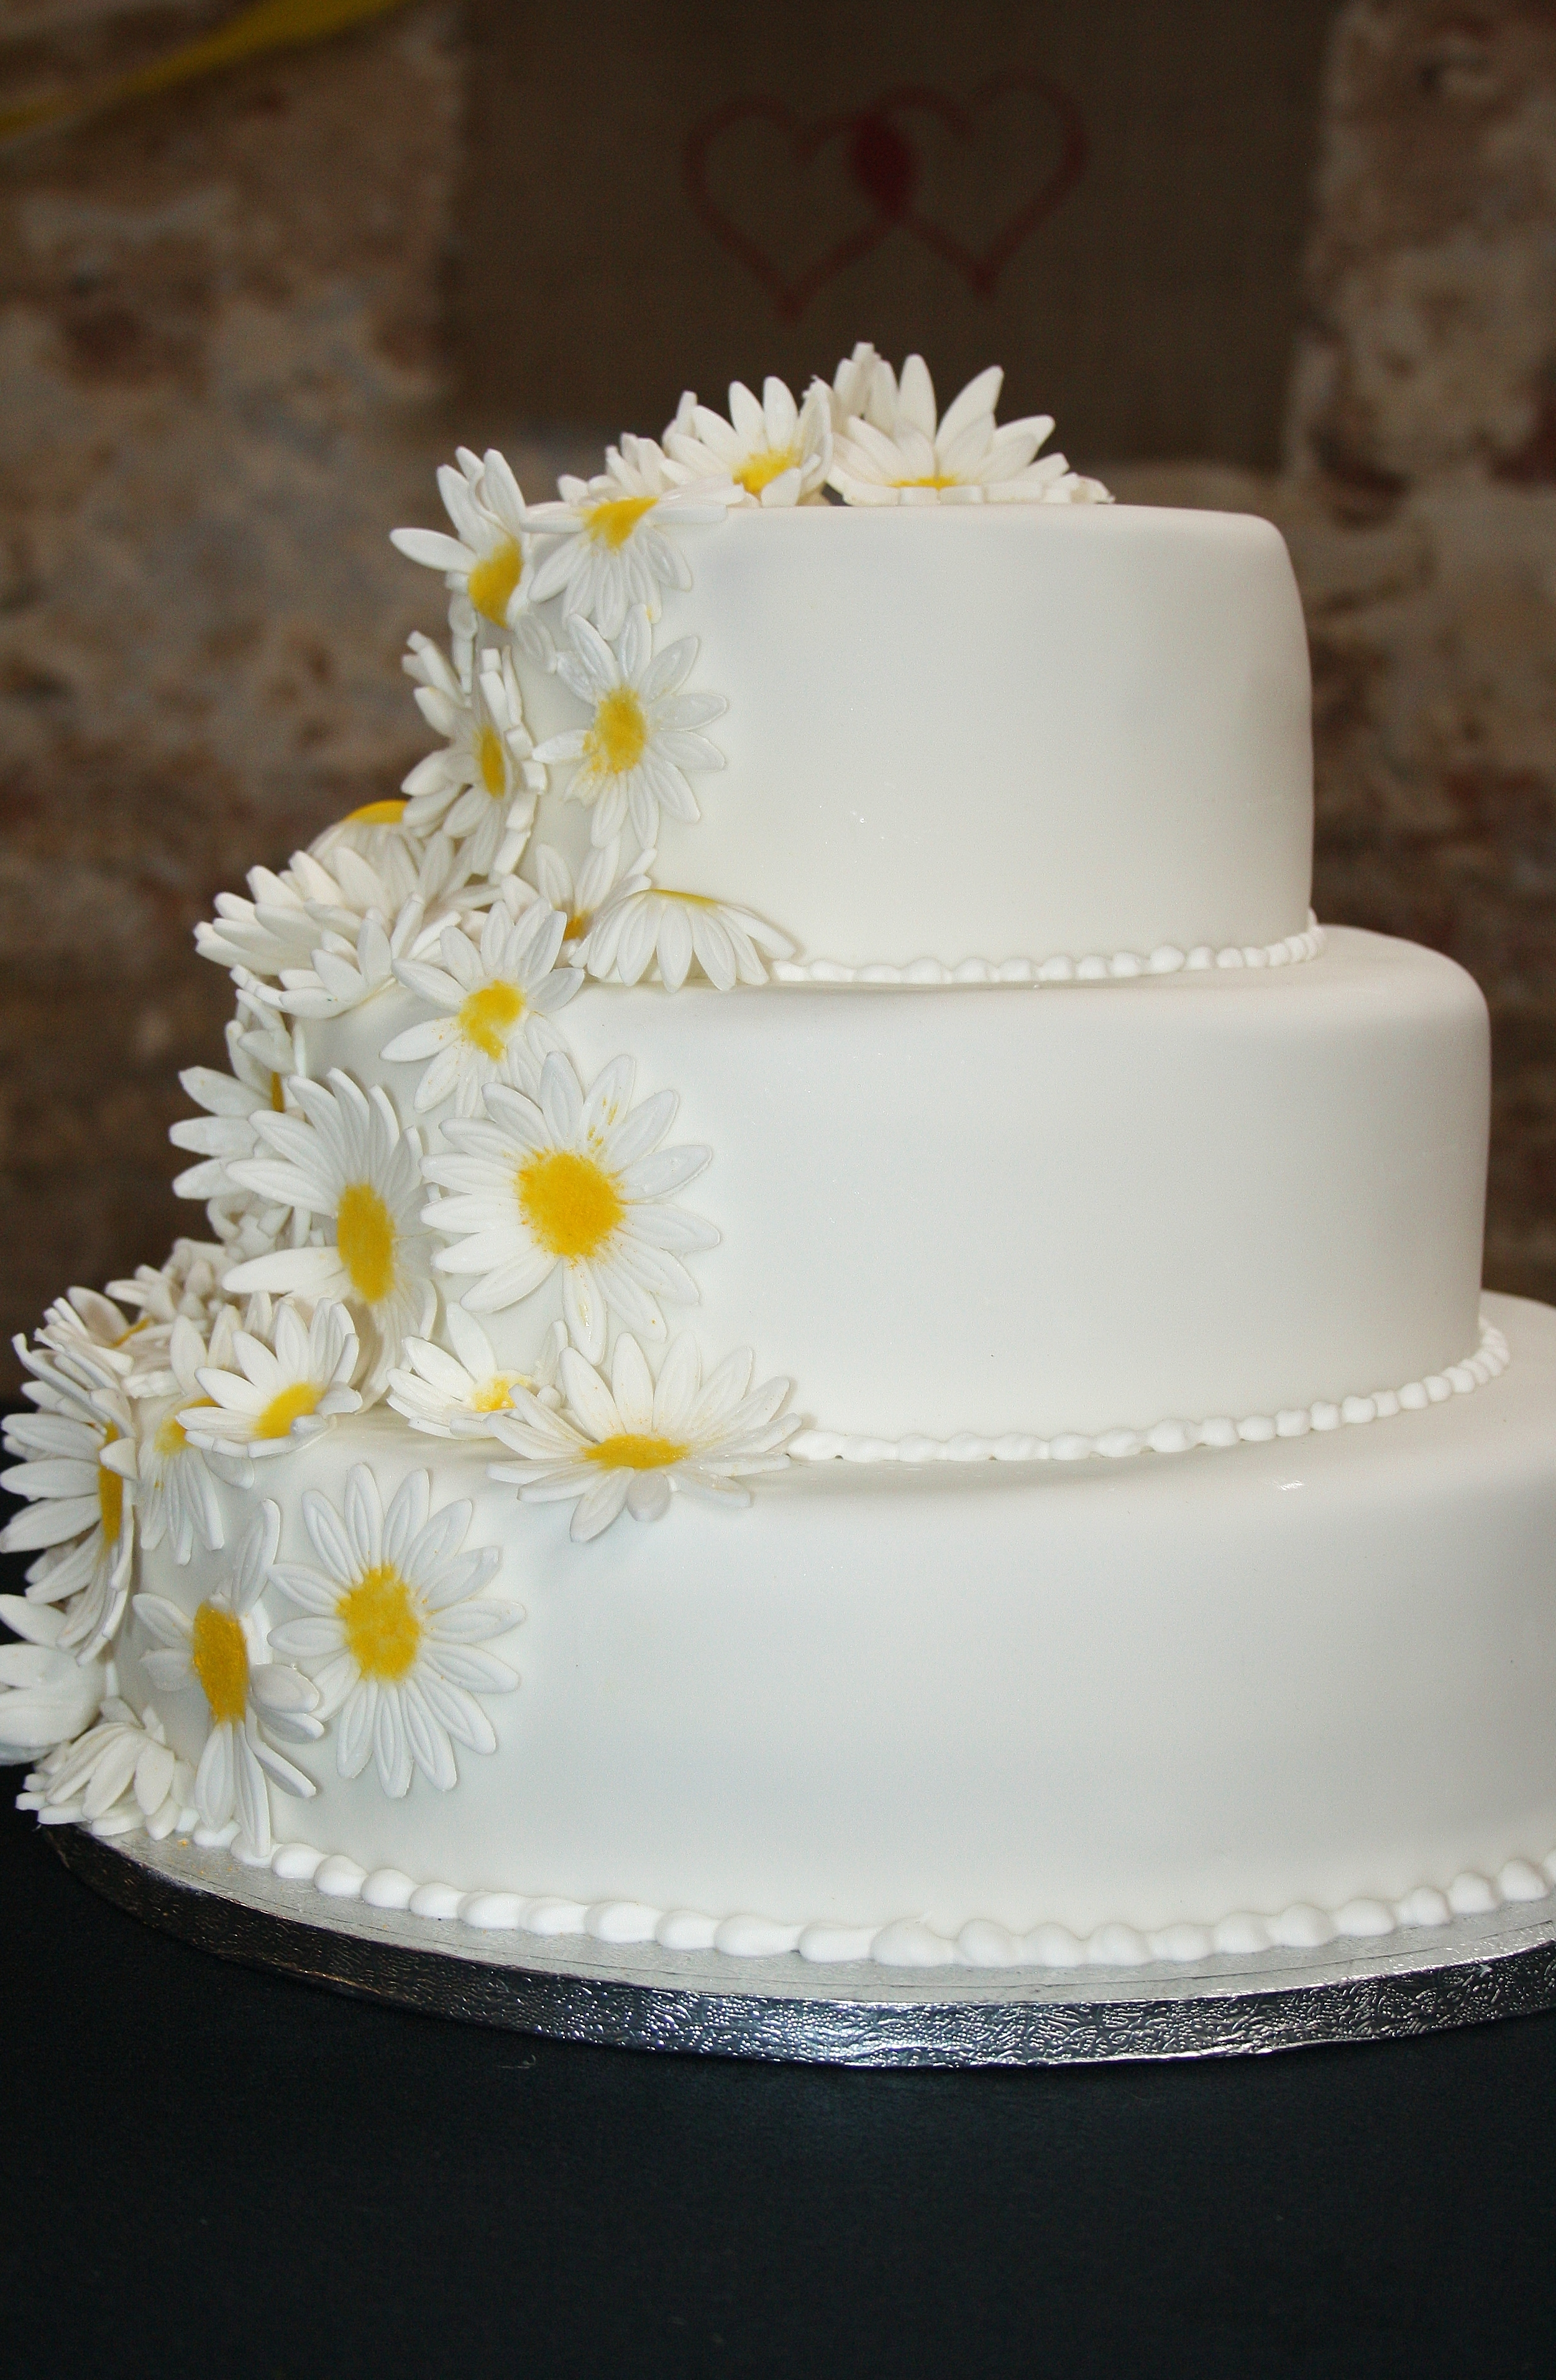 Daisy Wedding Cakes submited images